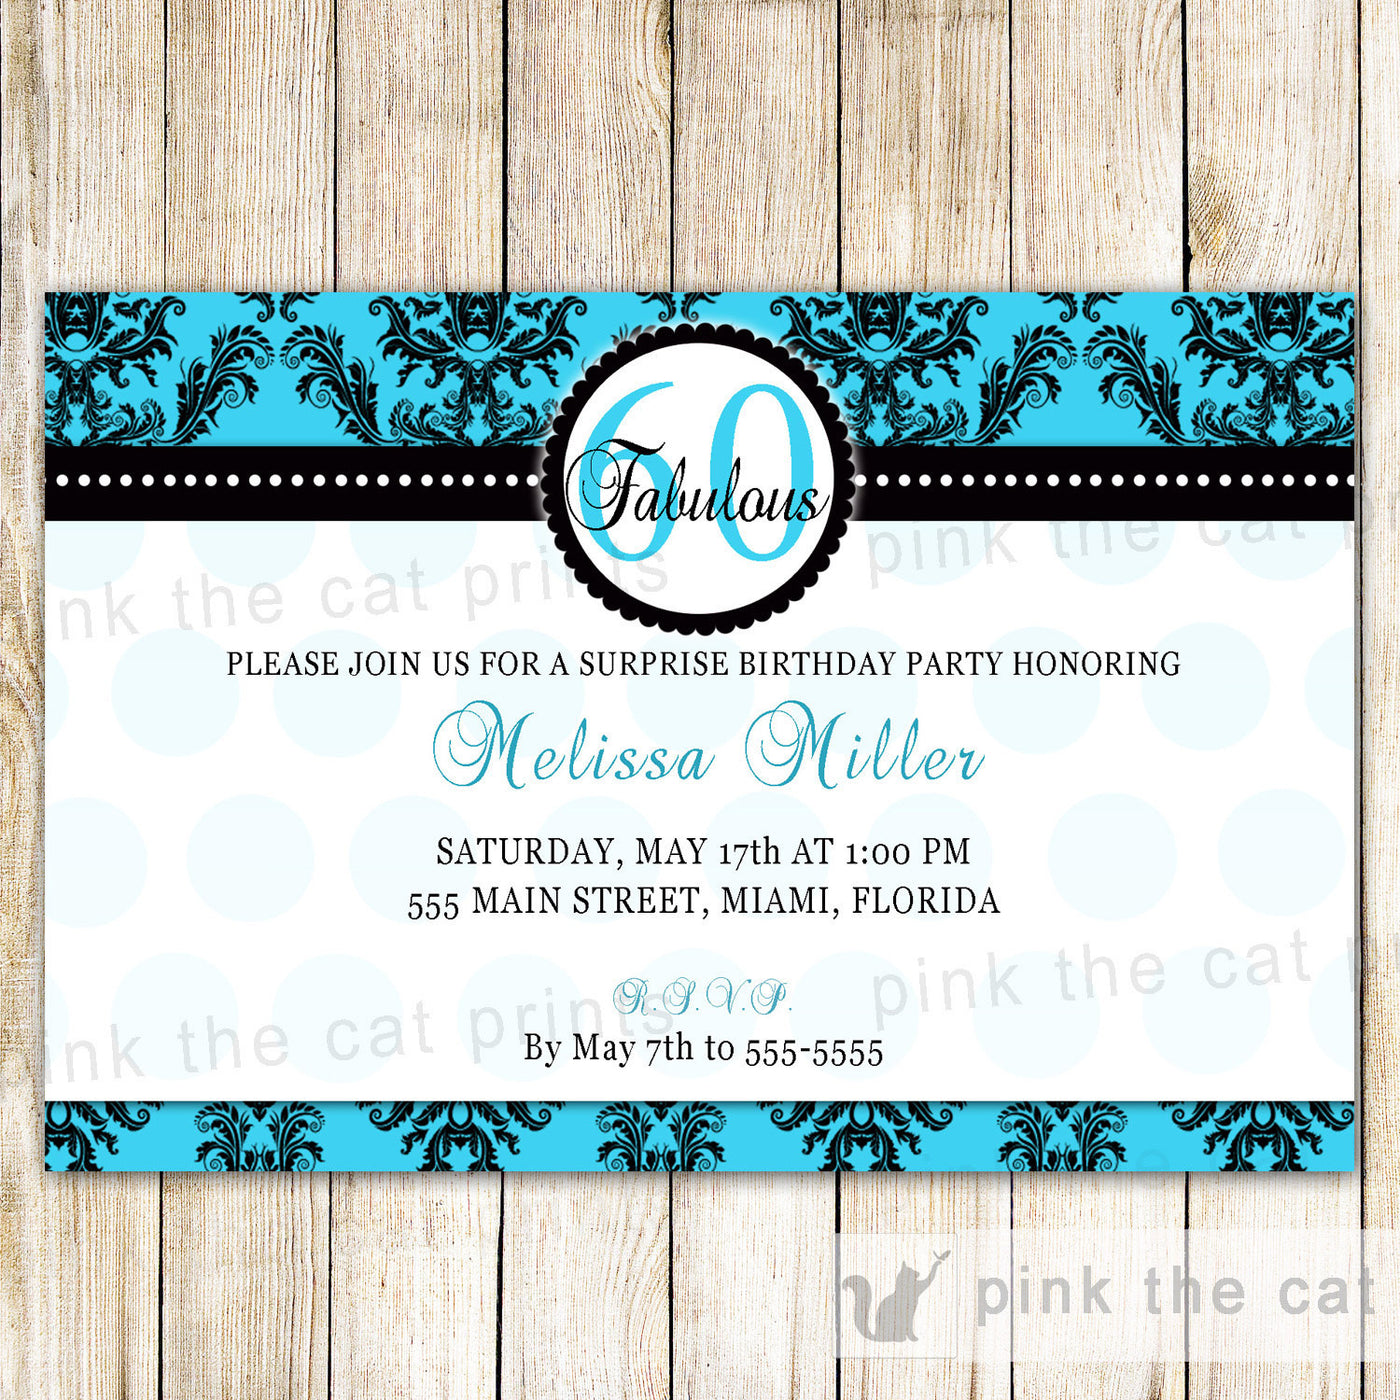 Turquoise Black Adult Birthday Party Invitation Pink The Cat